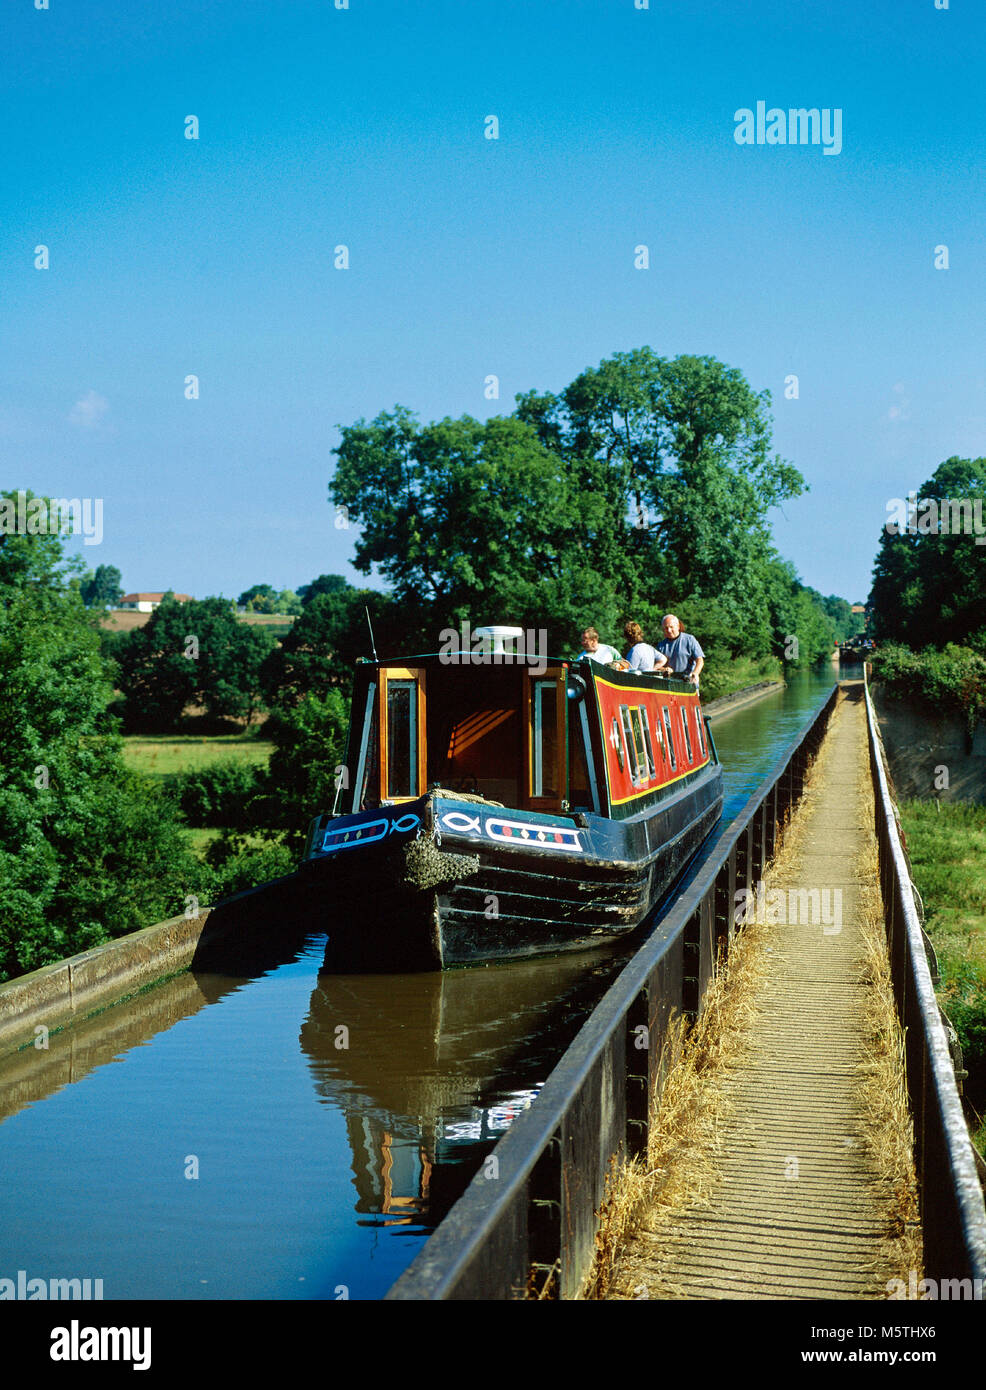 Narrowboat crossing Edstone Aqueduct, also known as Bearley Aqueduct as it is close to the village of that name - Stock Image